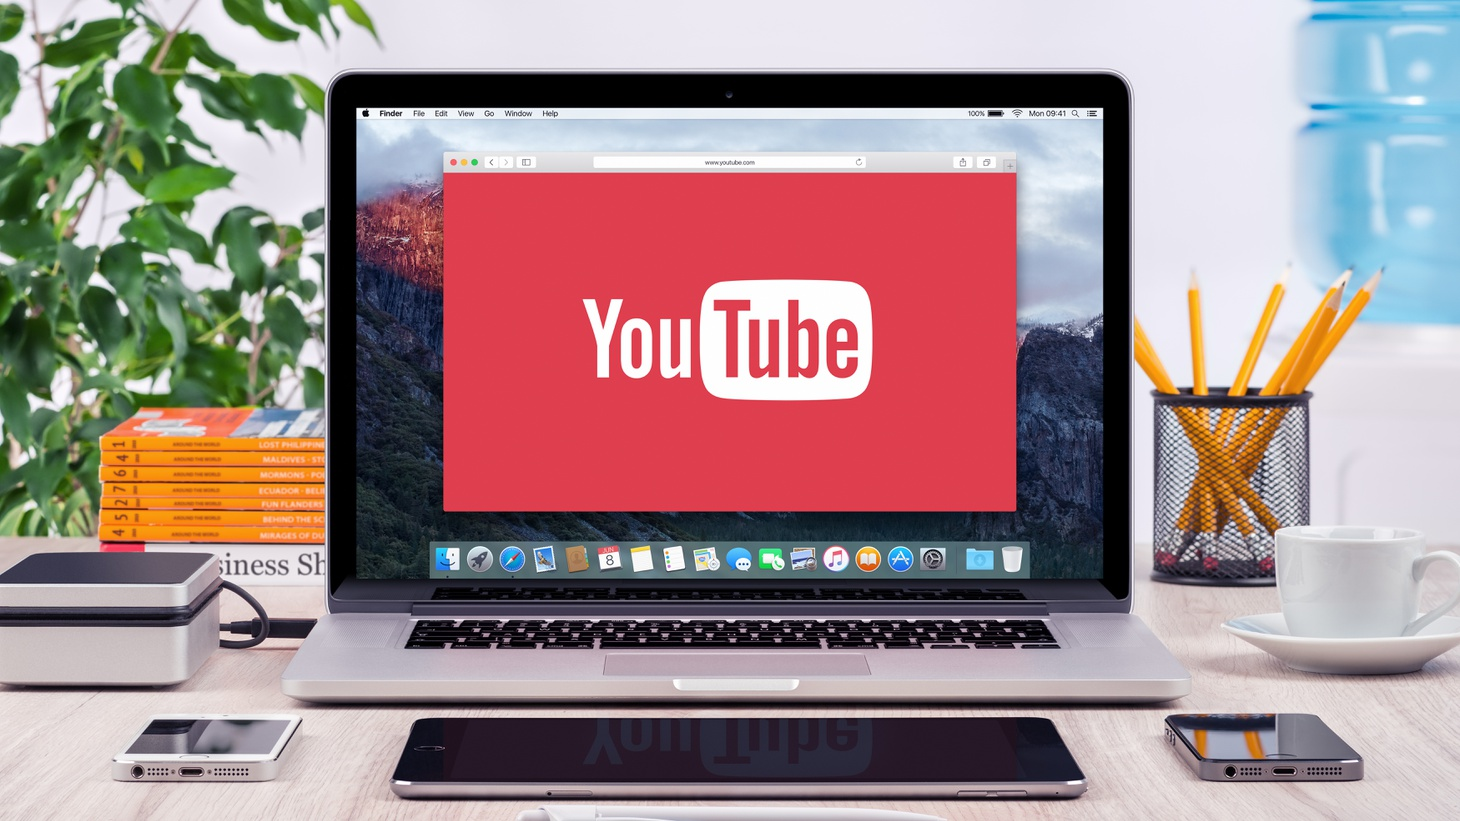 YouTube will start banning all anti-vaccine activists and misinformation on its platform.